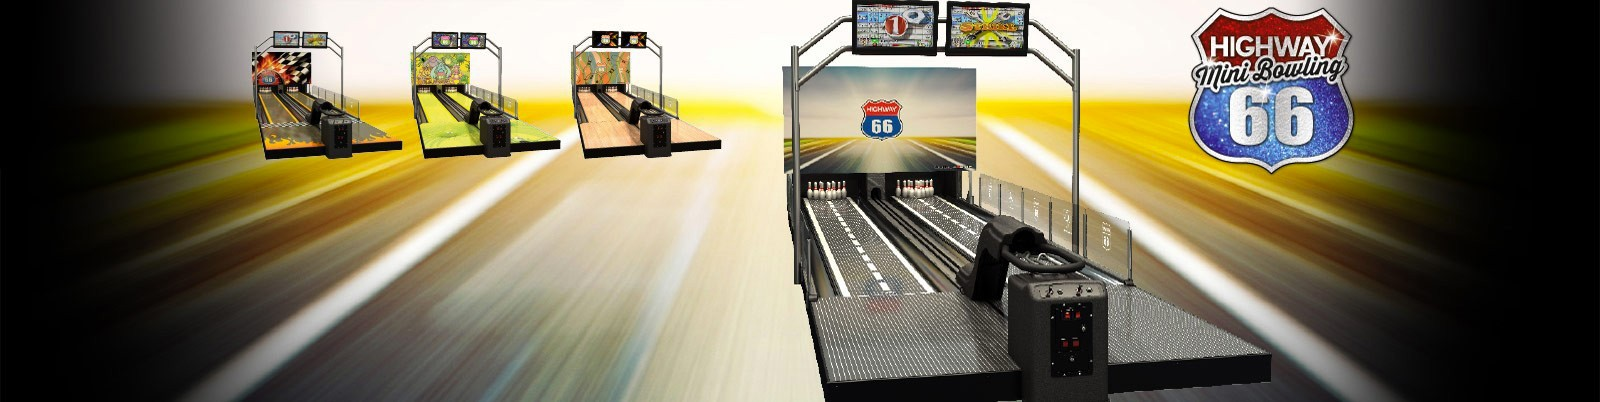 banner-hy-home-amusement-minibowling-highway66